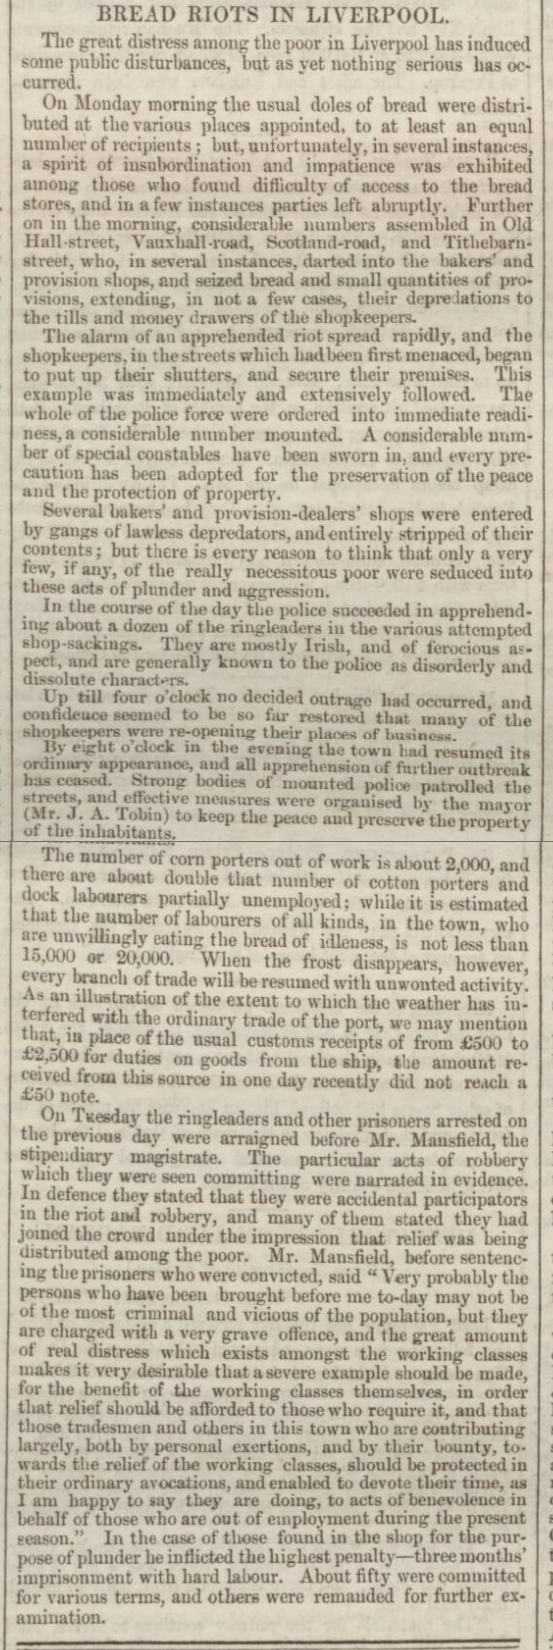 historical newspaper story about the Liverpool bread riots of 1855